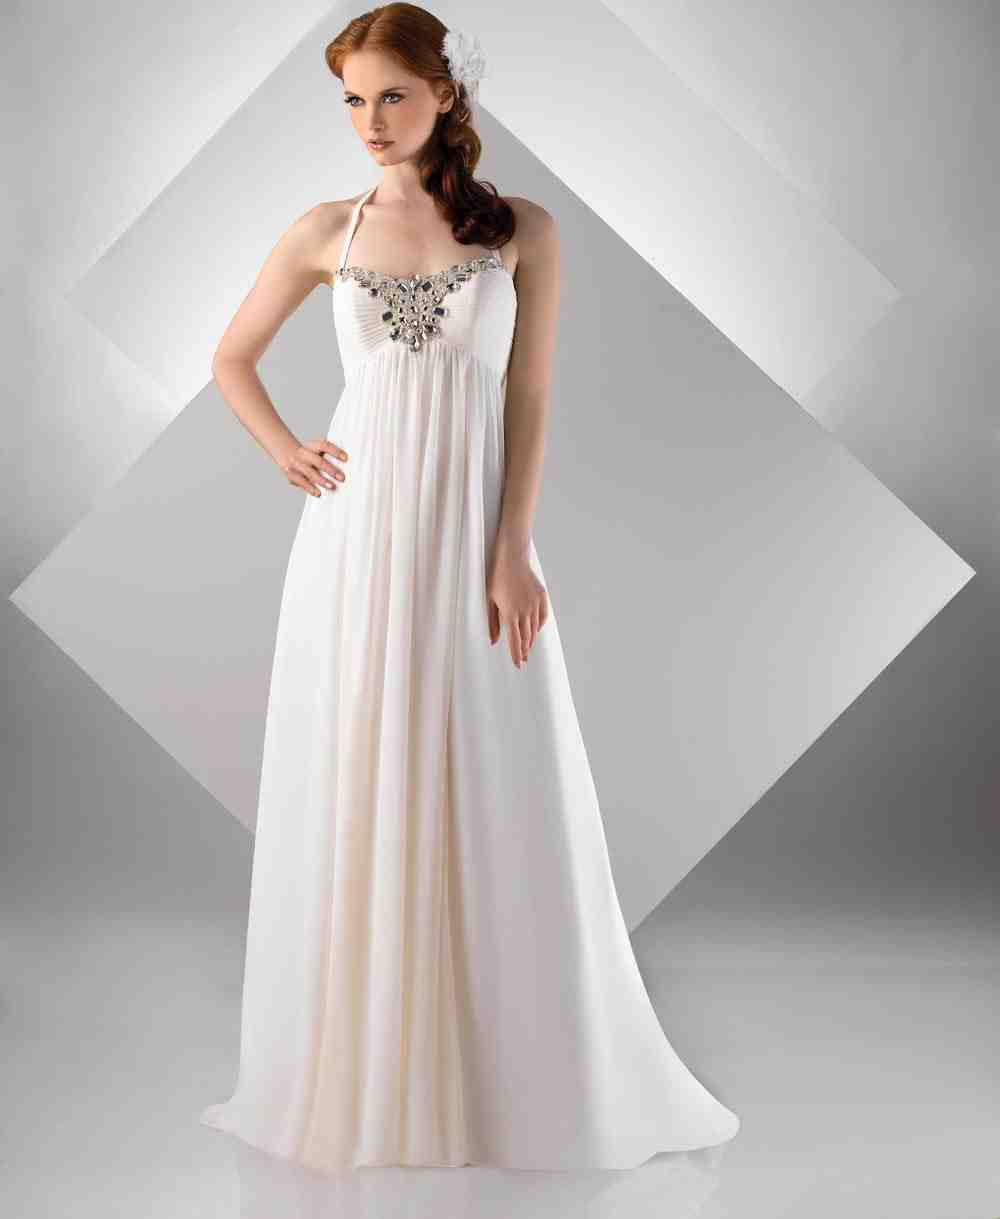 Simple maternity wedding dresses wedding and bridal for Maternity dresses for wedding